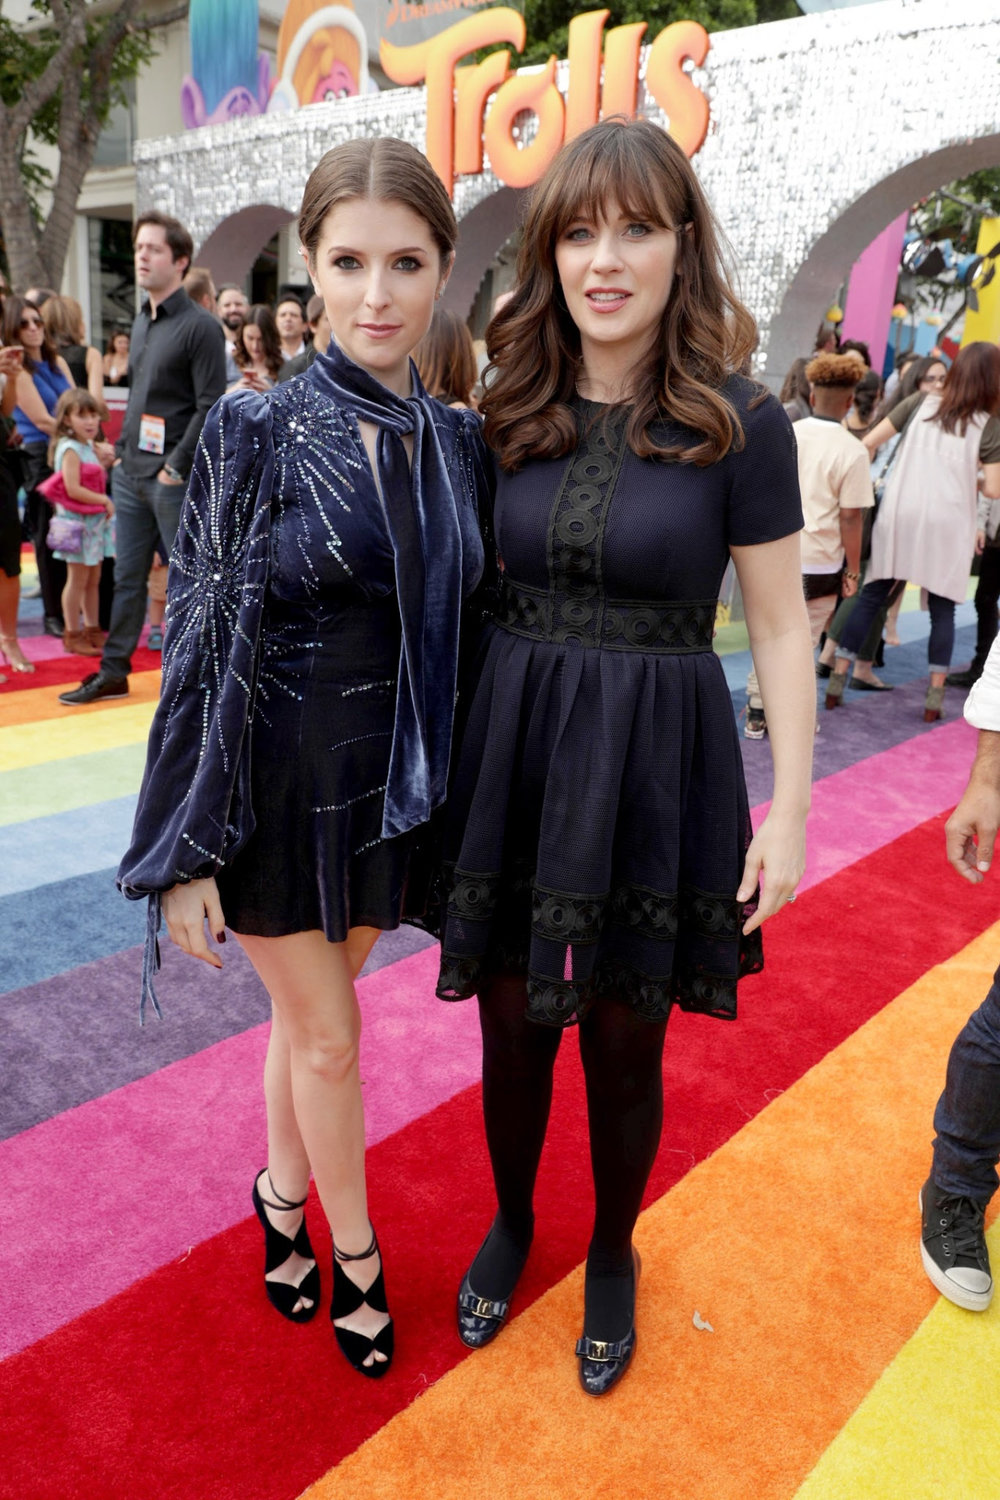 Anna Kendrick & Zooey Deschanel making the case for opaque tights versus a bare leg. It's all about what you are trying to communicate.